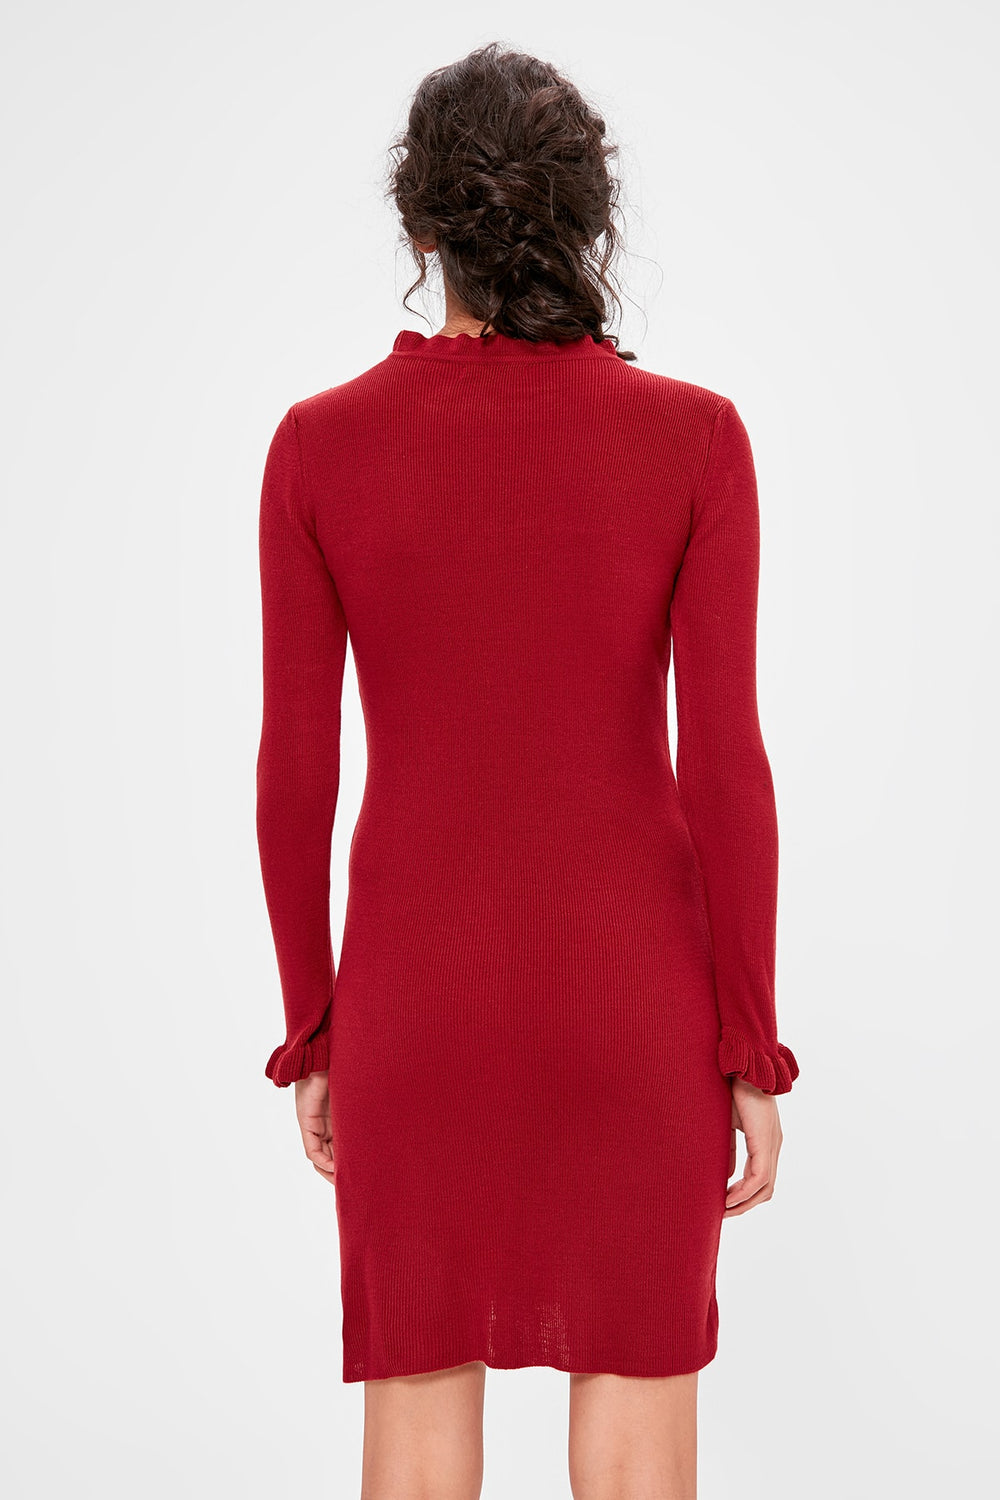 Miss Zut Miss Zut Burgundy Sleeve And Colar Flounces Sweater Dress Miss Zut &CO